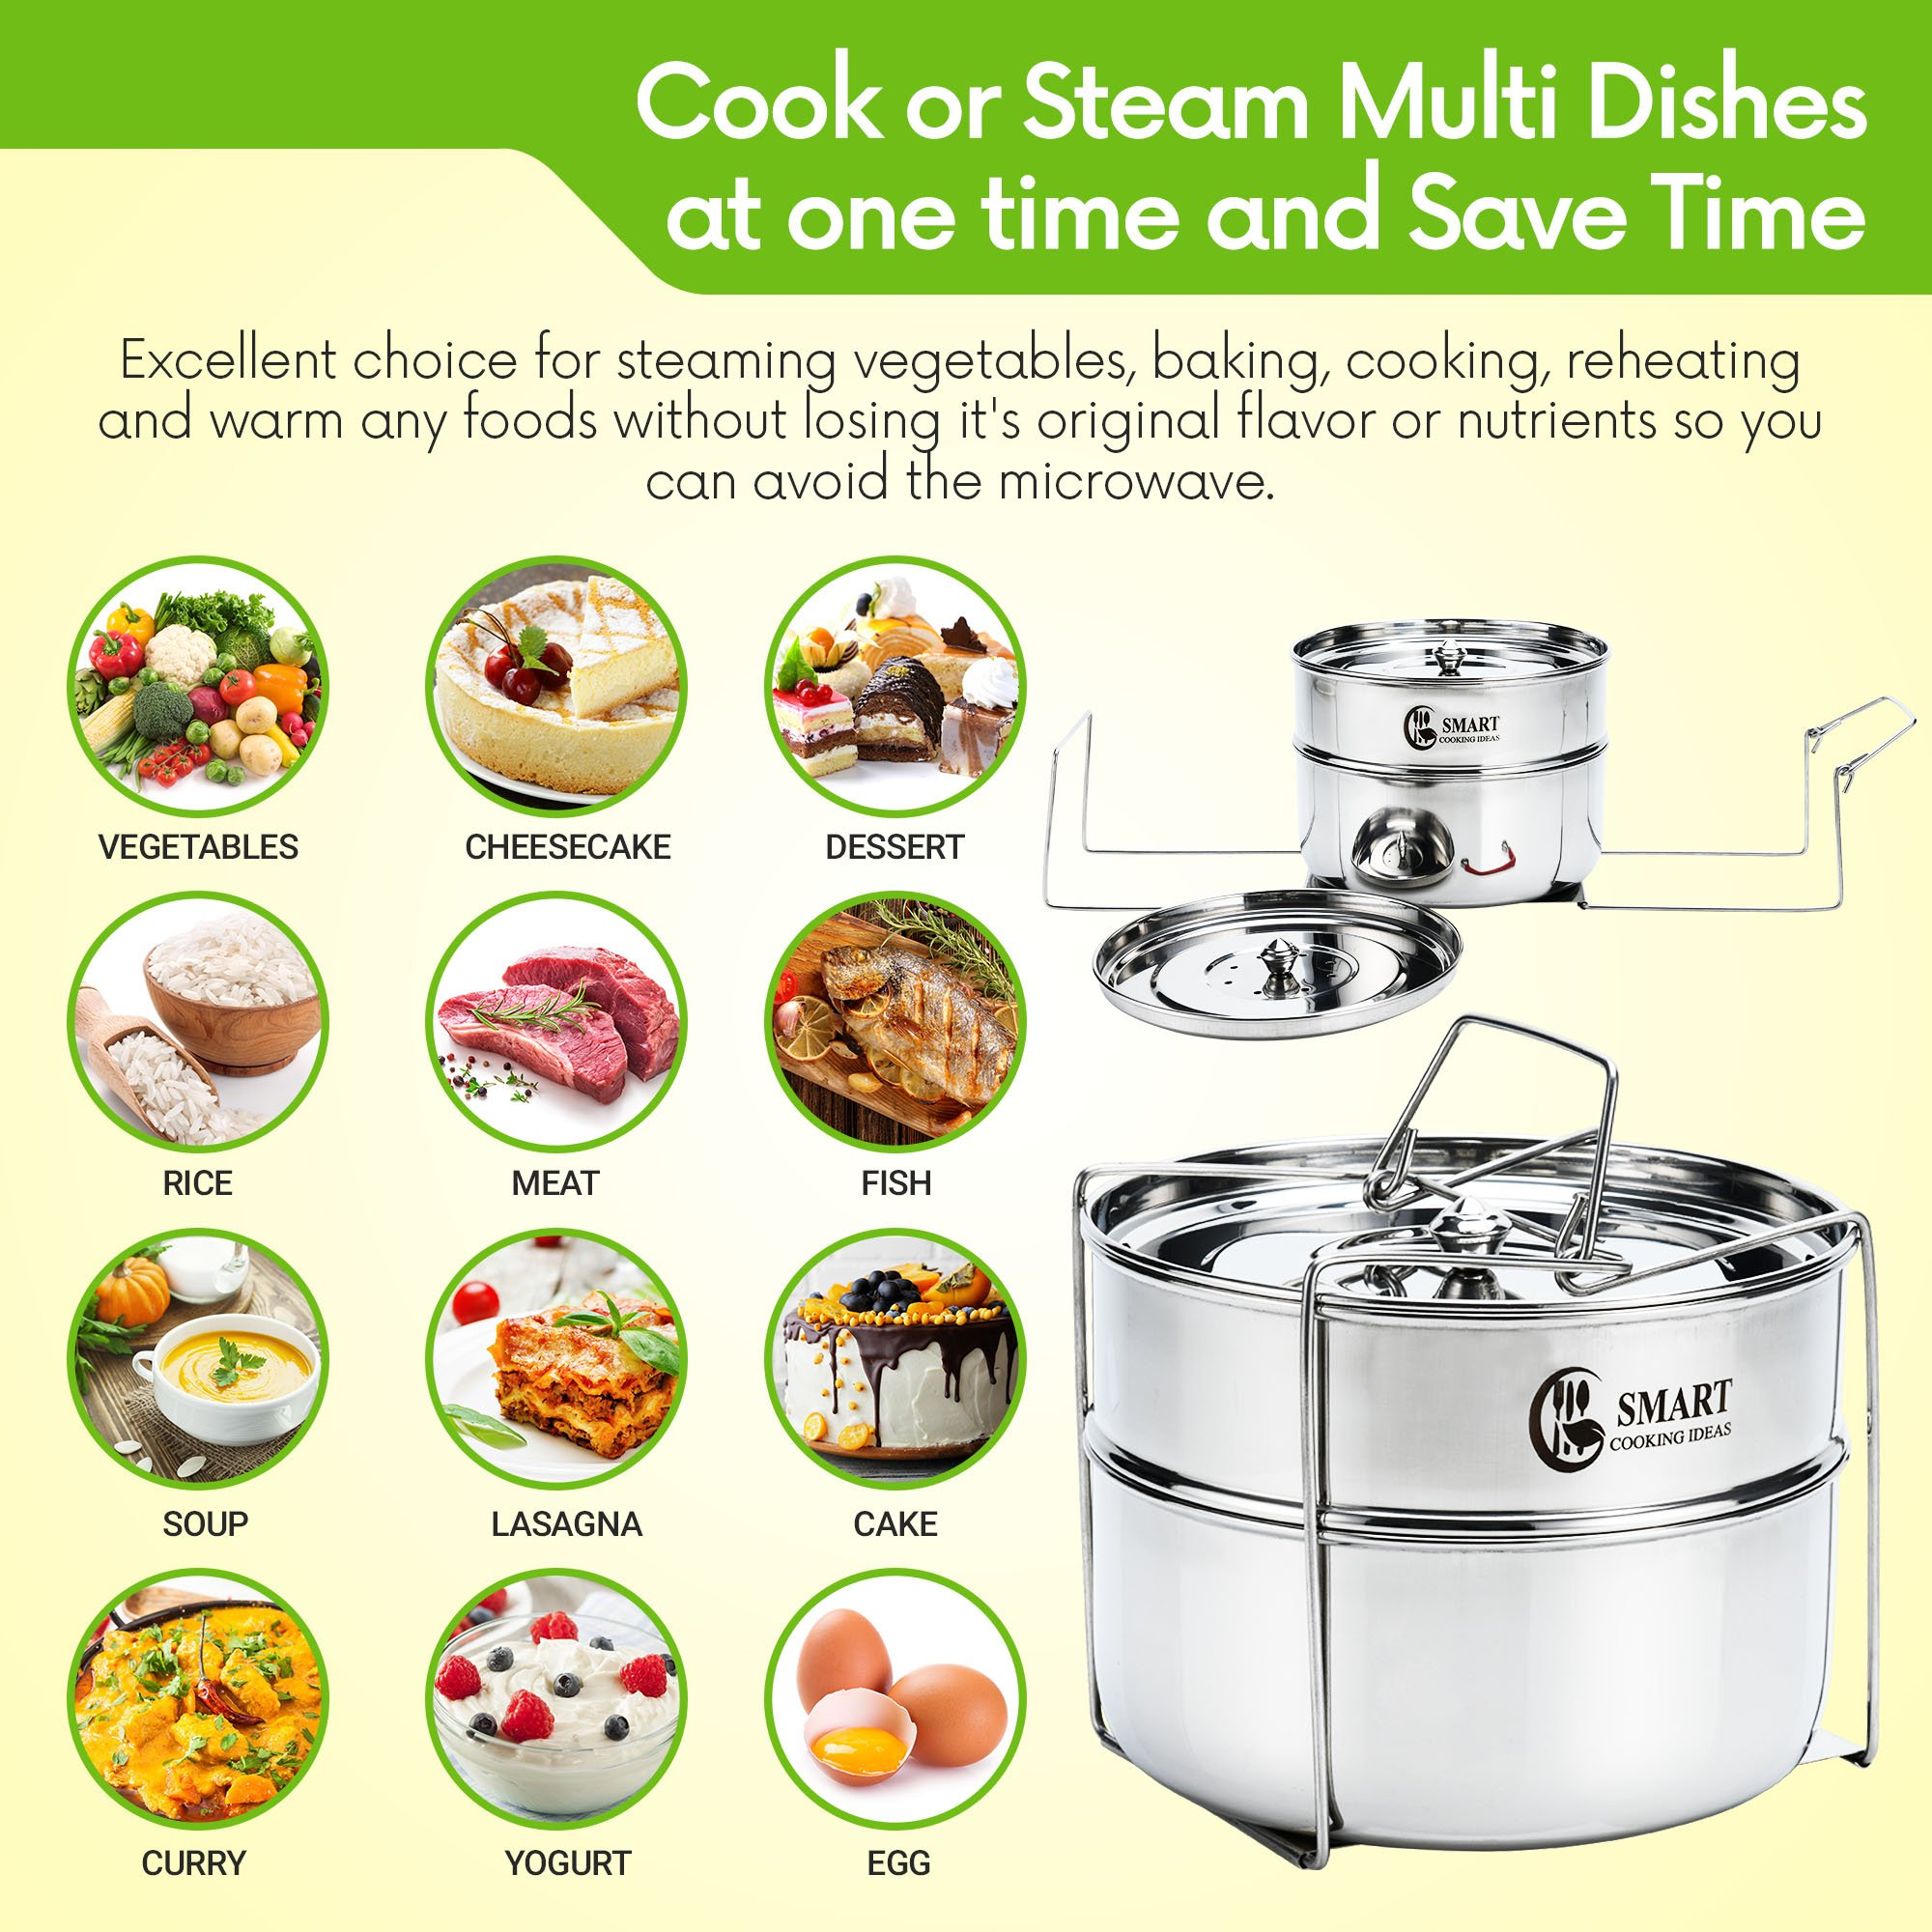 Stackable Stainless Steel Pressure Cooker Steamer Insert Pans with sling - For Instant Pot Accessories 6,8 qt-Baking, Casseroles, Lasagna Pans, Food Cooker, Upgraded Interchangeable Lid-Instapot Pans by SMART COOKING IDEAS (Image #4)